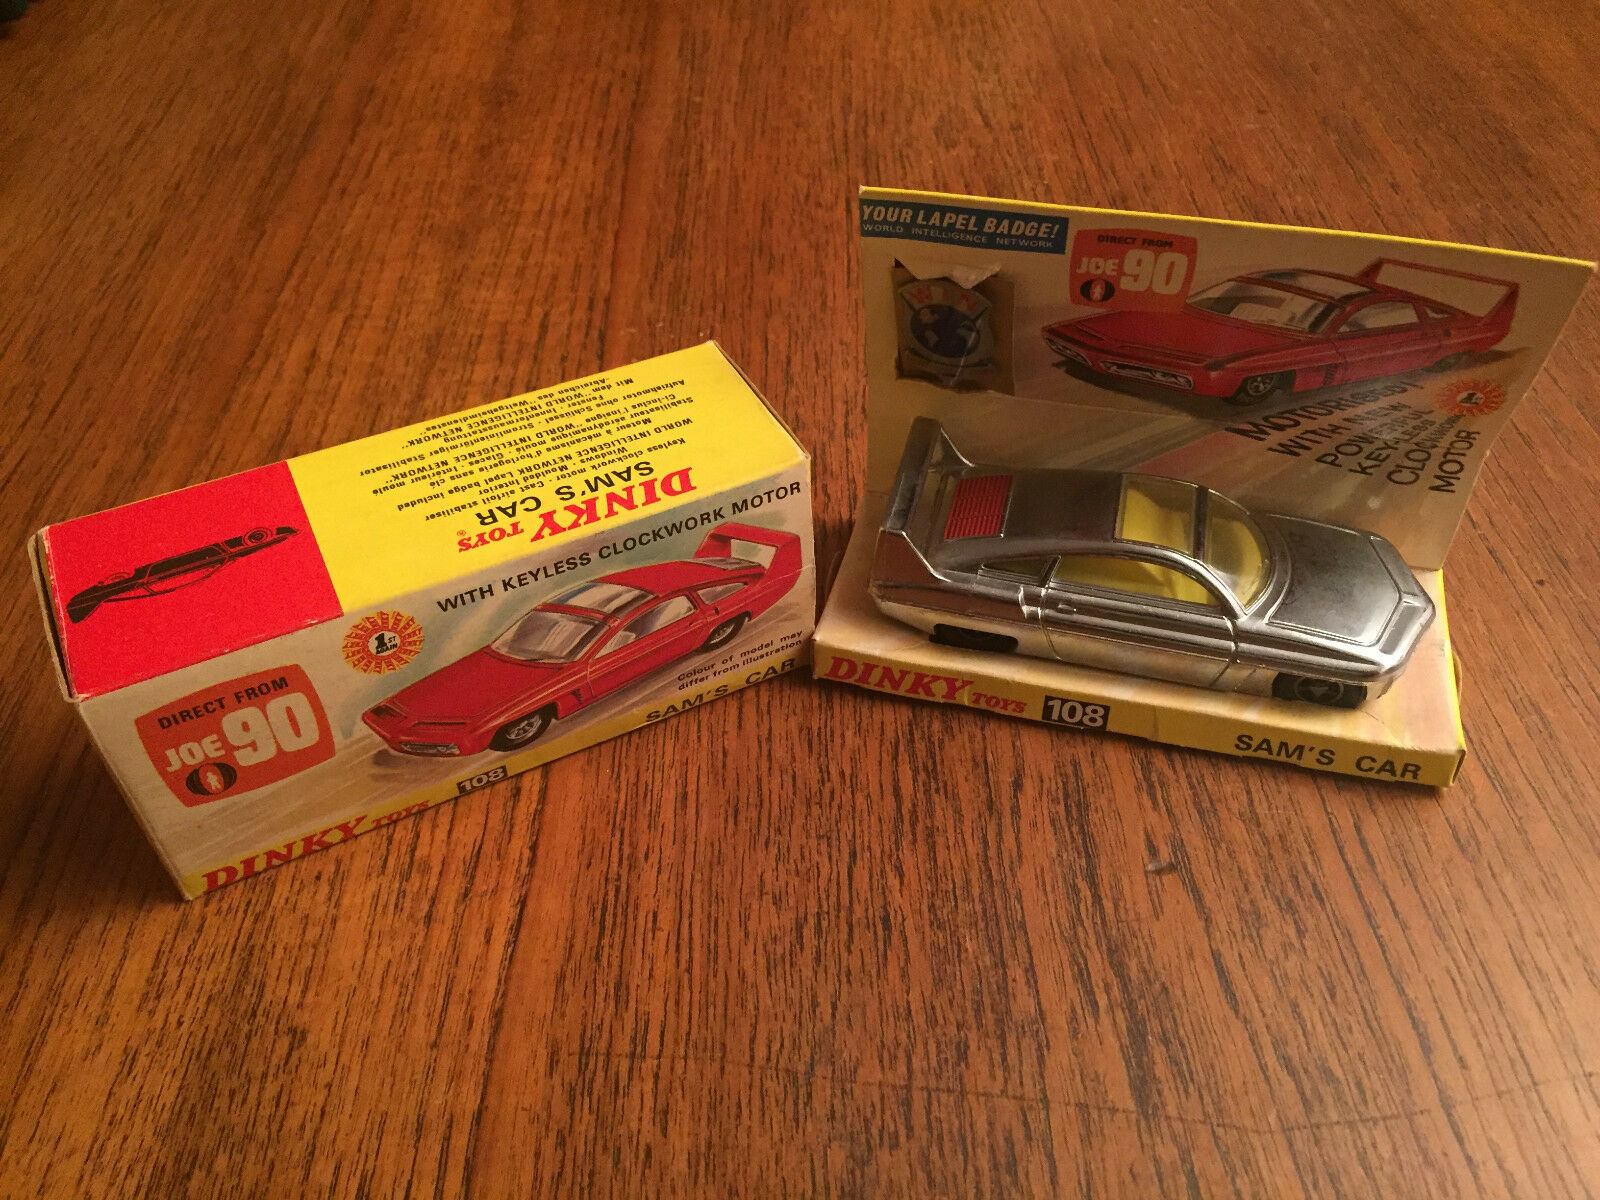 GERRY ANDERSON JOE 90 DINKY TOYS  N°108 SAM'S voiture  magasin de gros